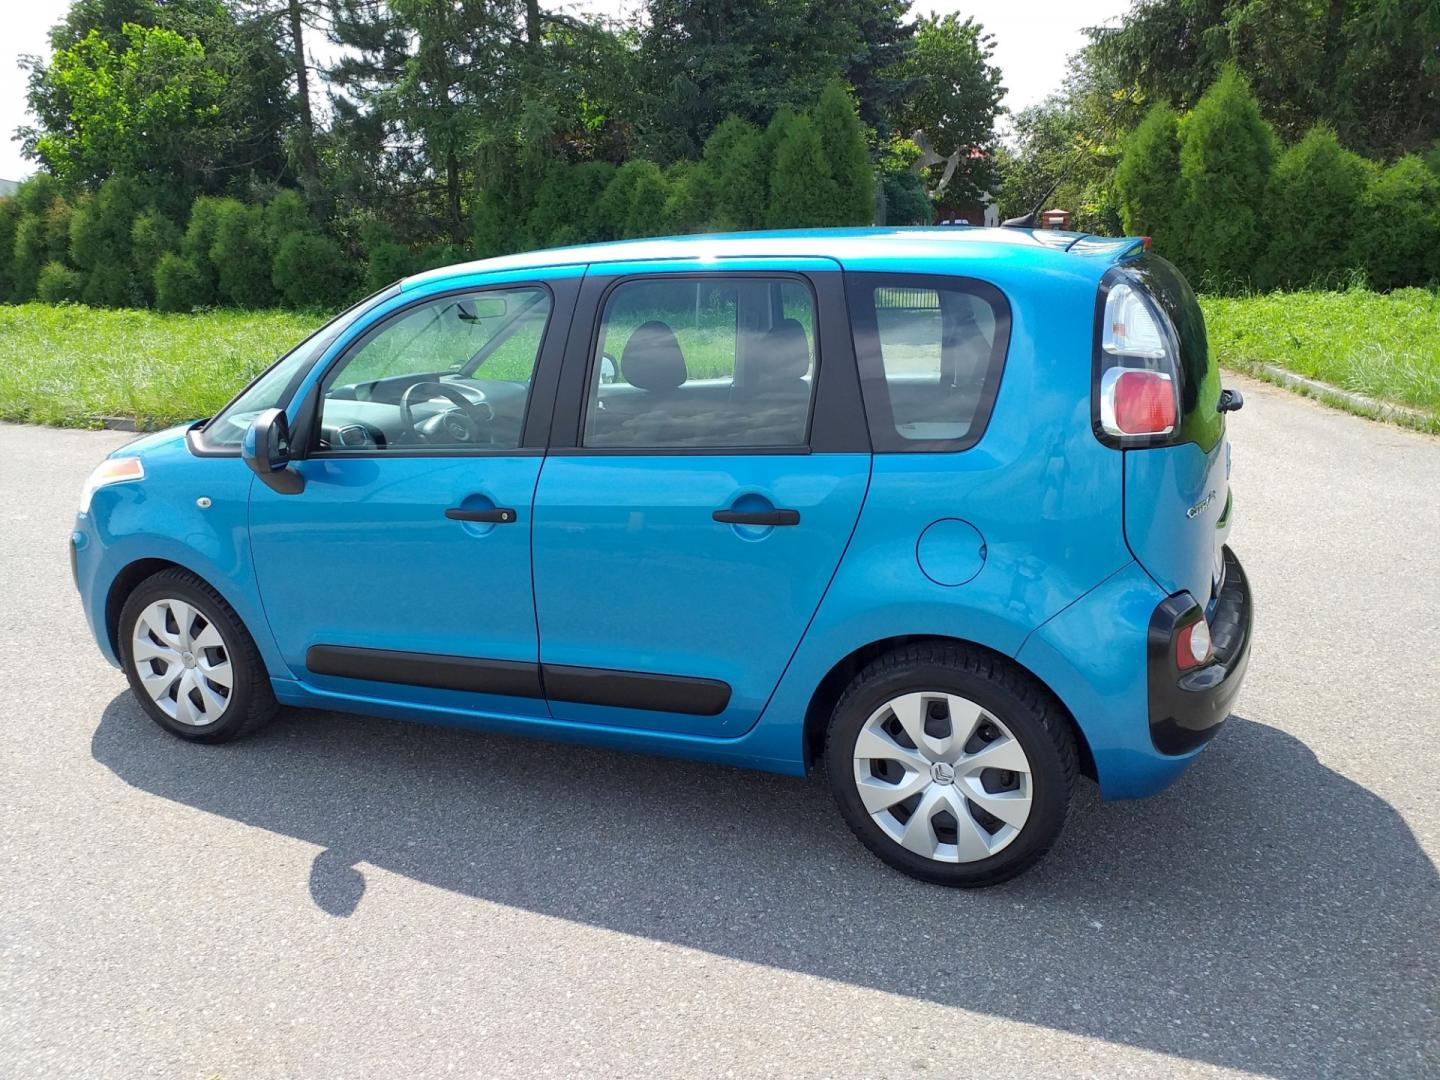 Citroen C3 Picasso1.4 benzyna2009